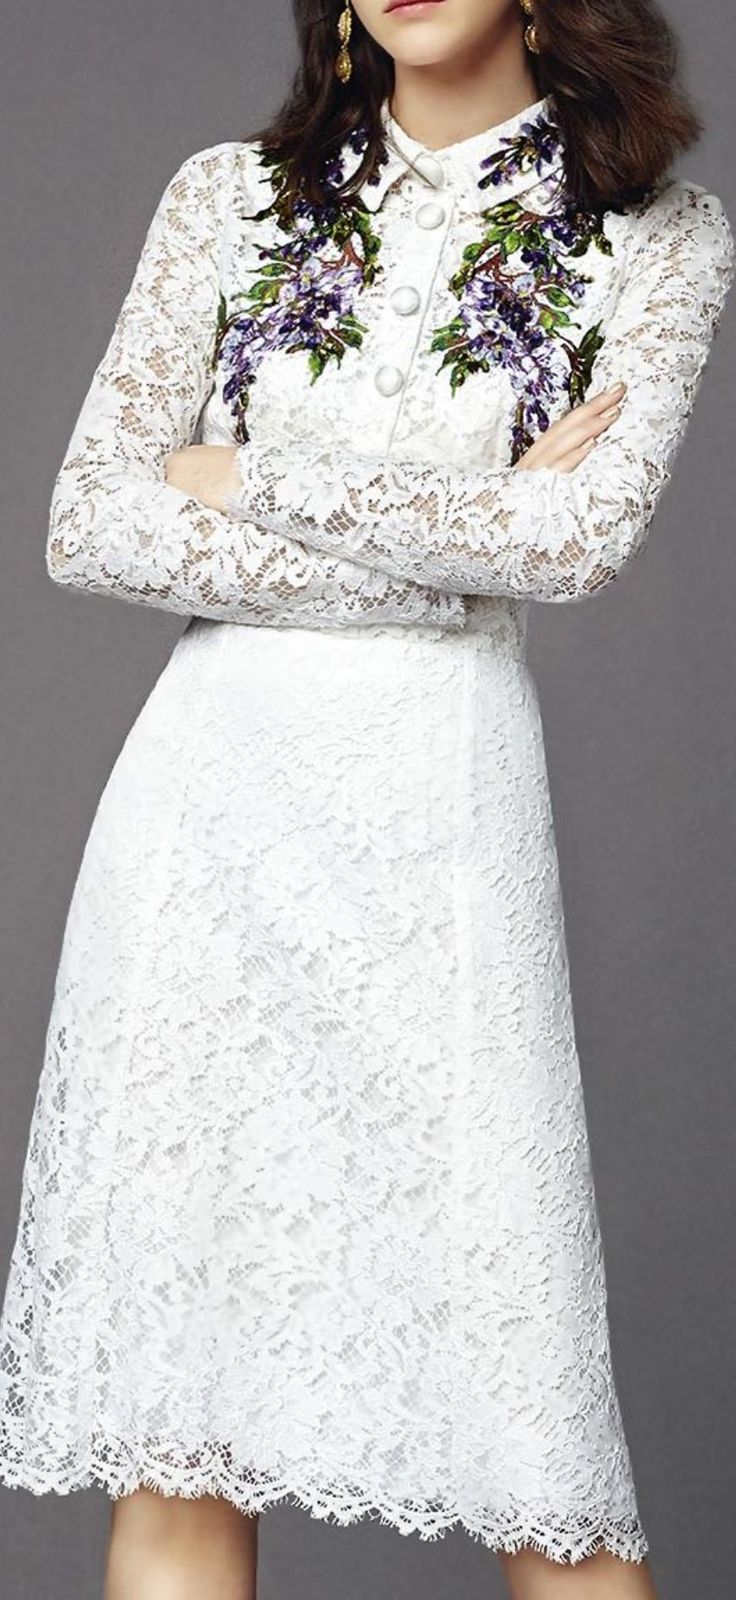 Dolce & Gabbana long-sleeve white lace dress with purple and green embroidery motif